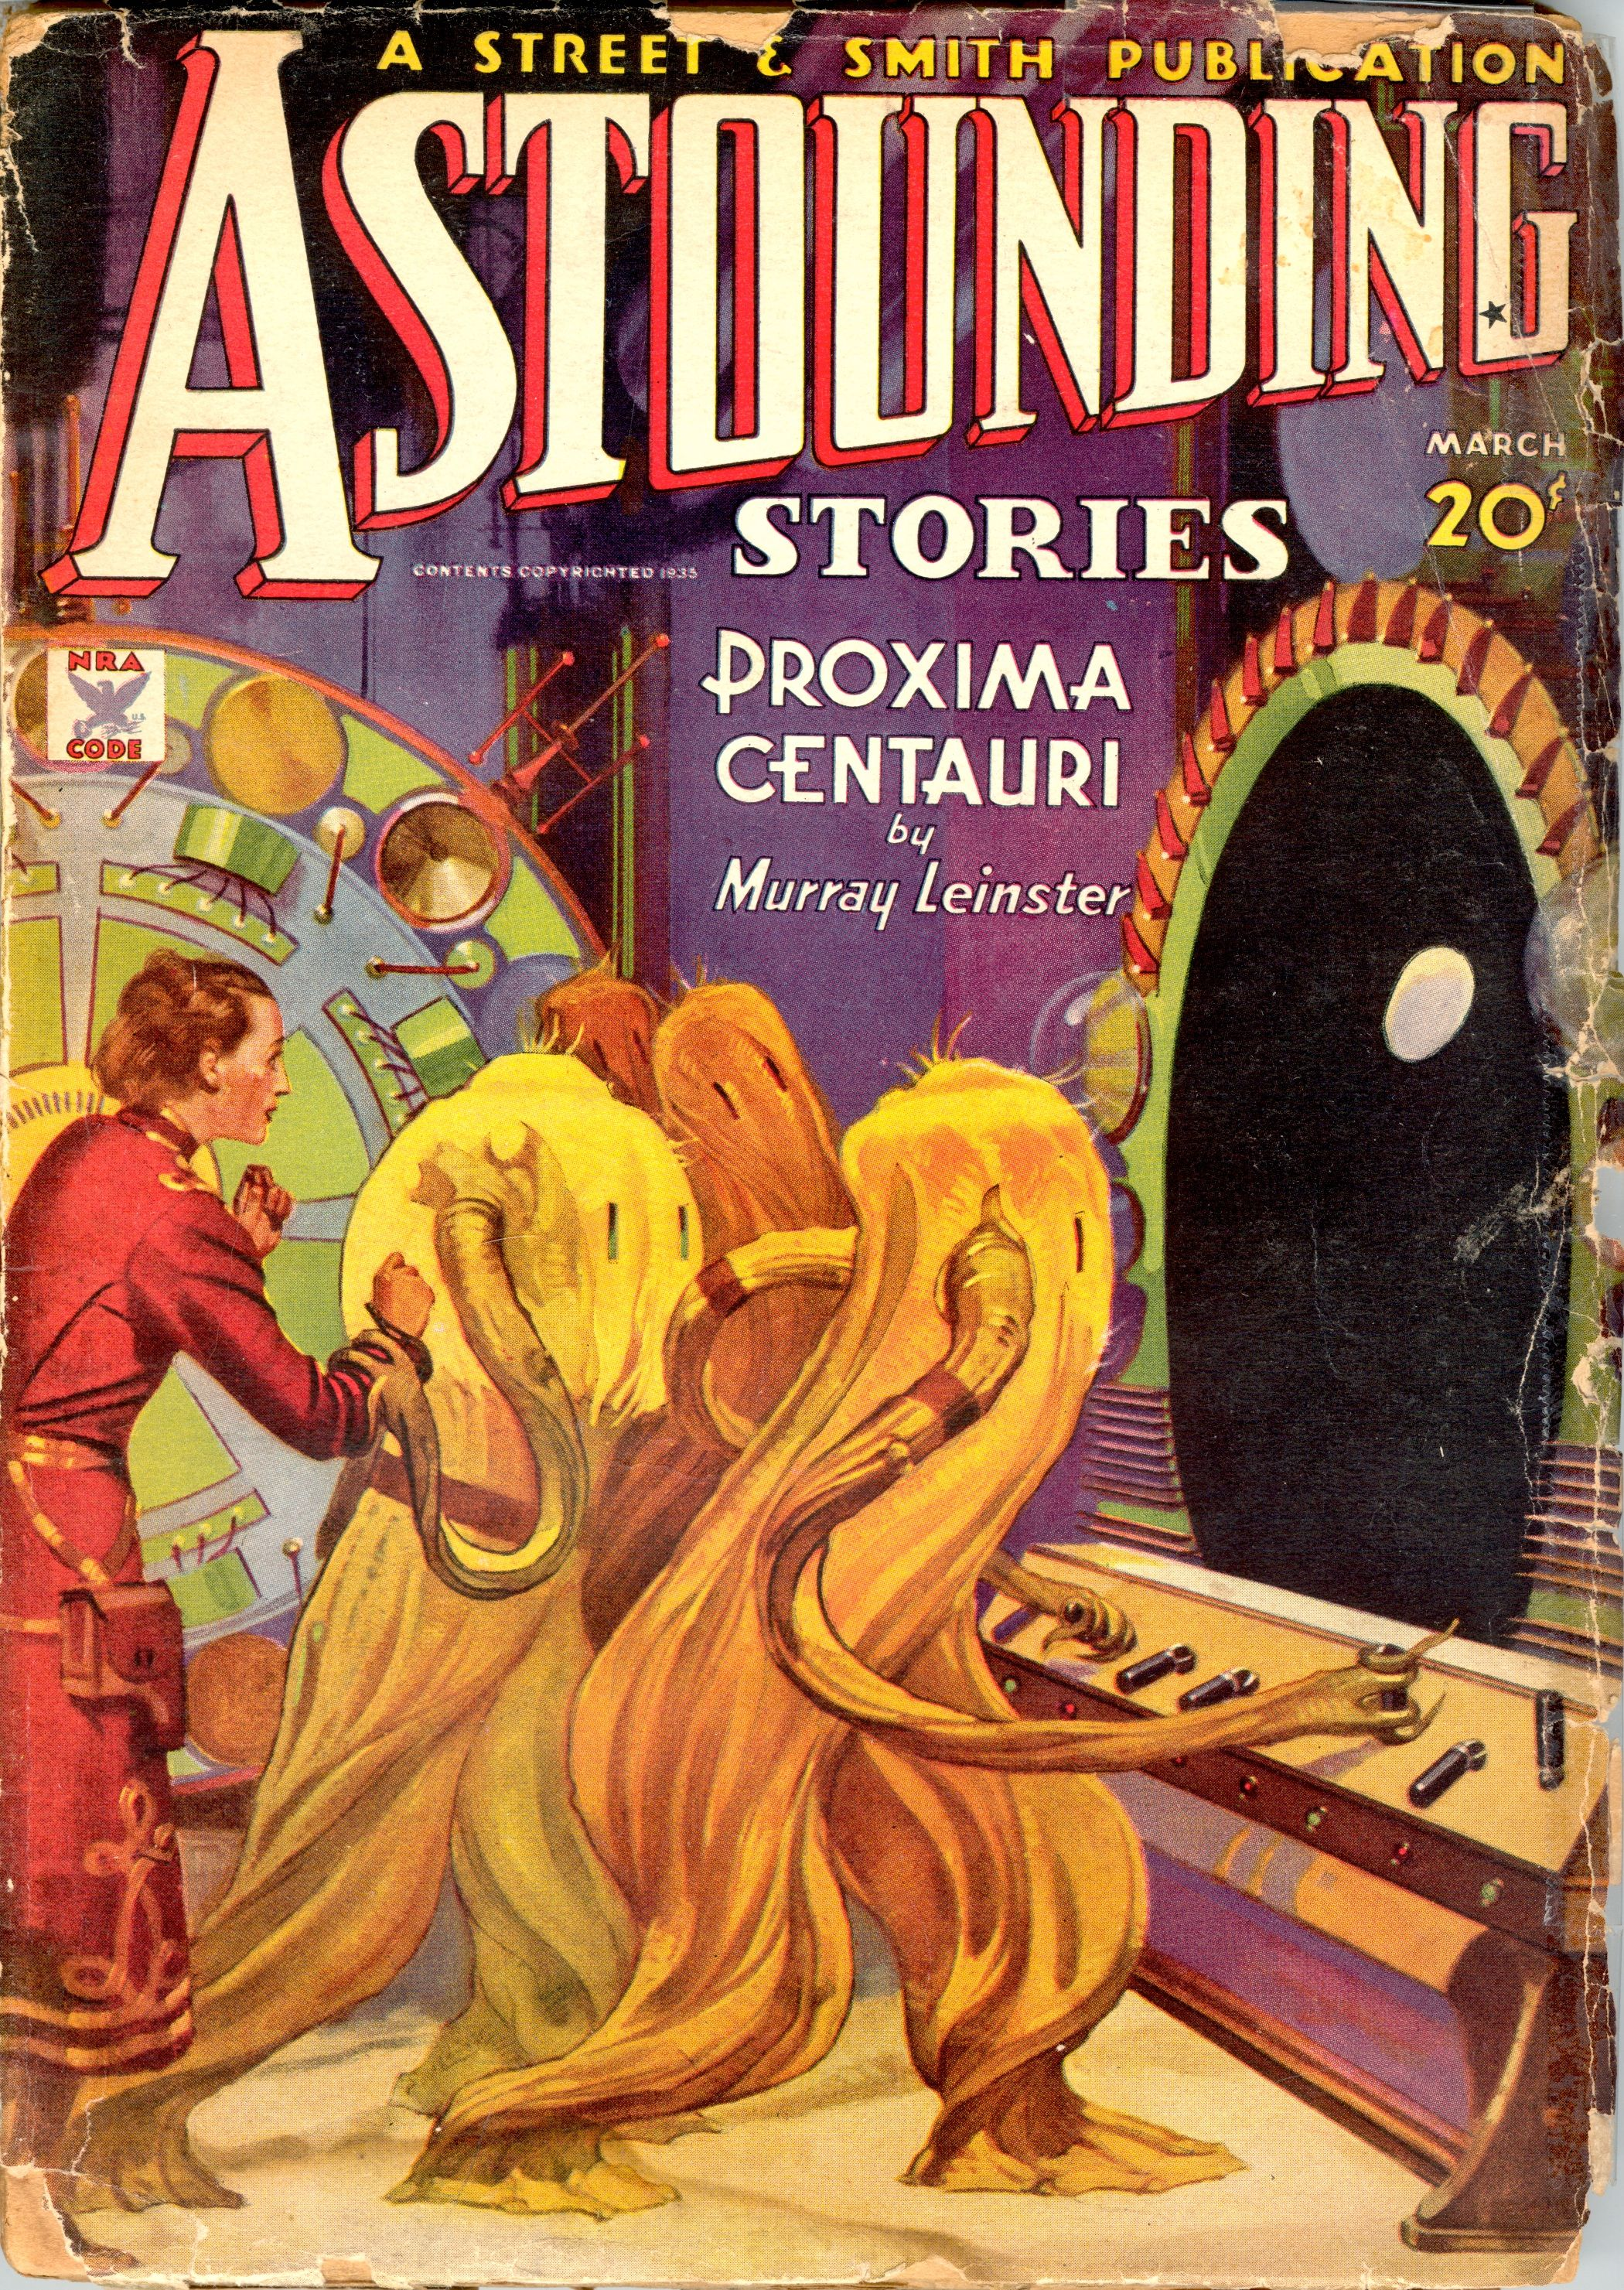 Sci Fi Pulp Fiction Covers 60